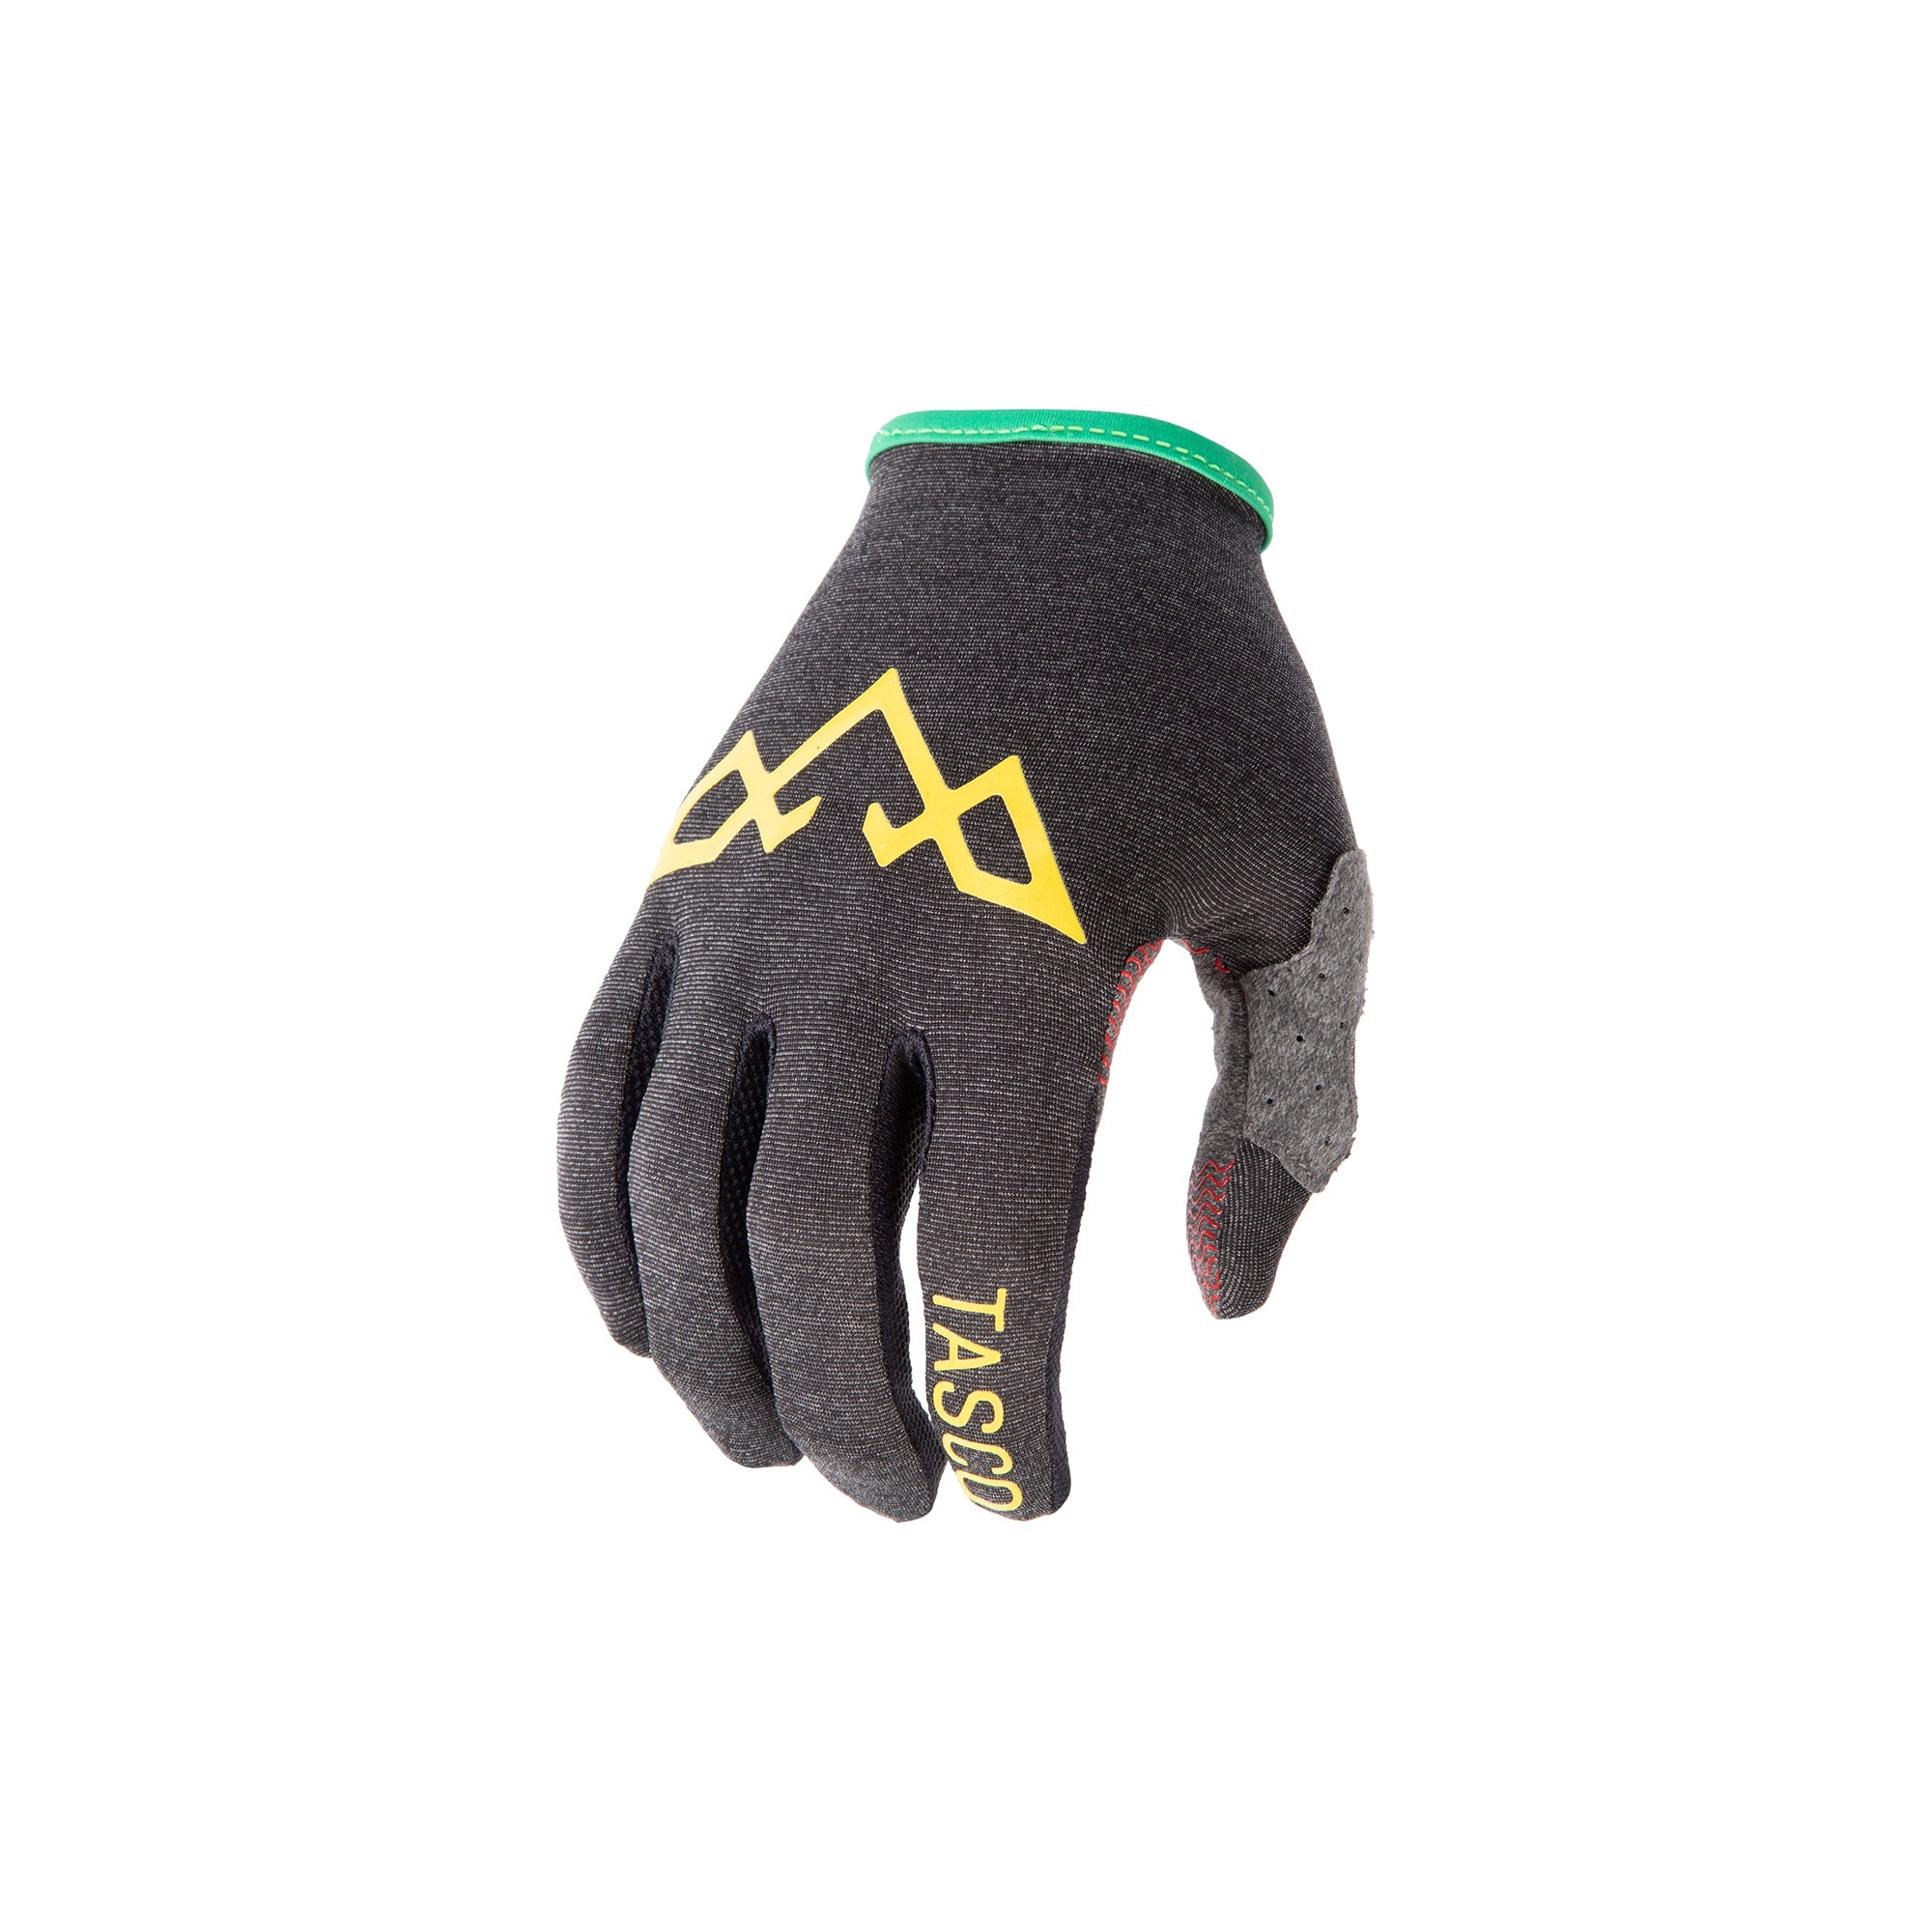 RECON Ultralight Gloves - The Bob - MTB Lifestyle | TASCO MTB